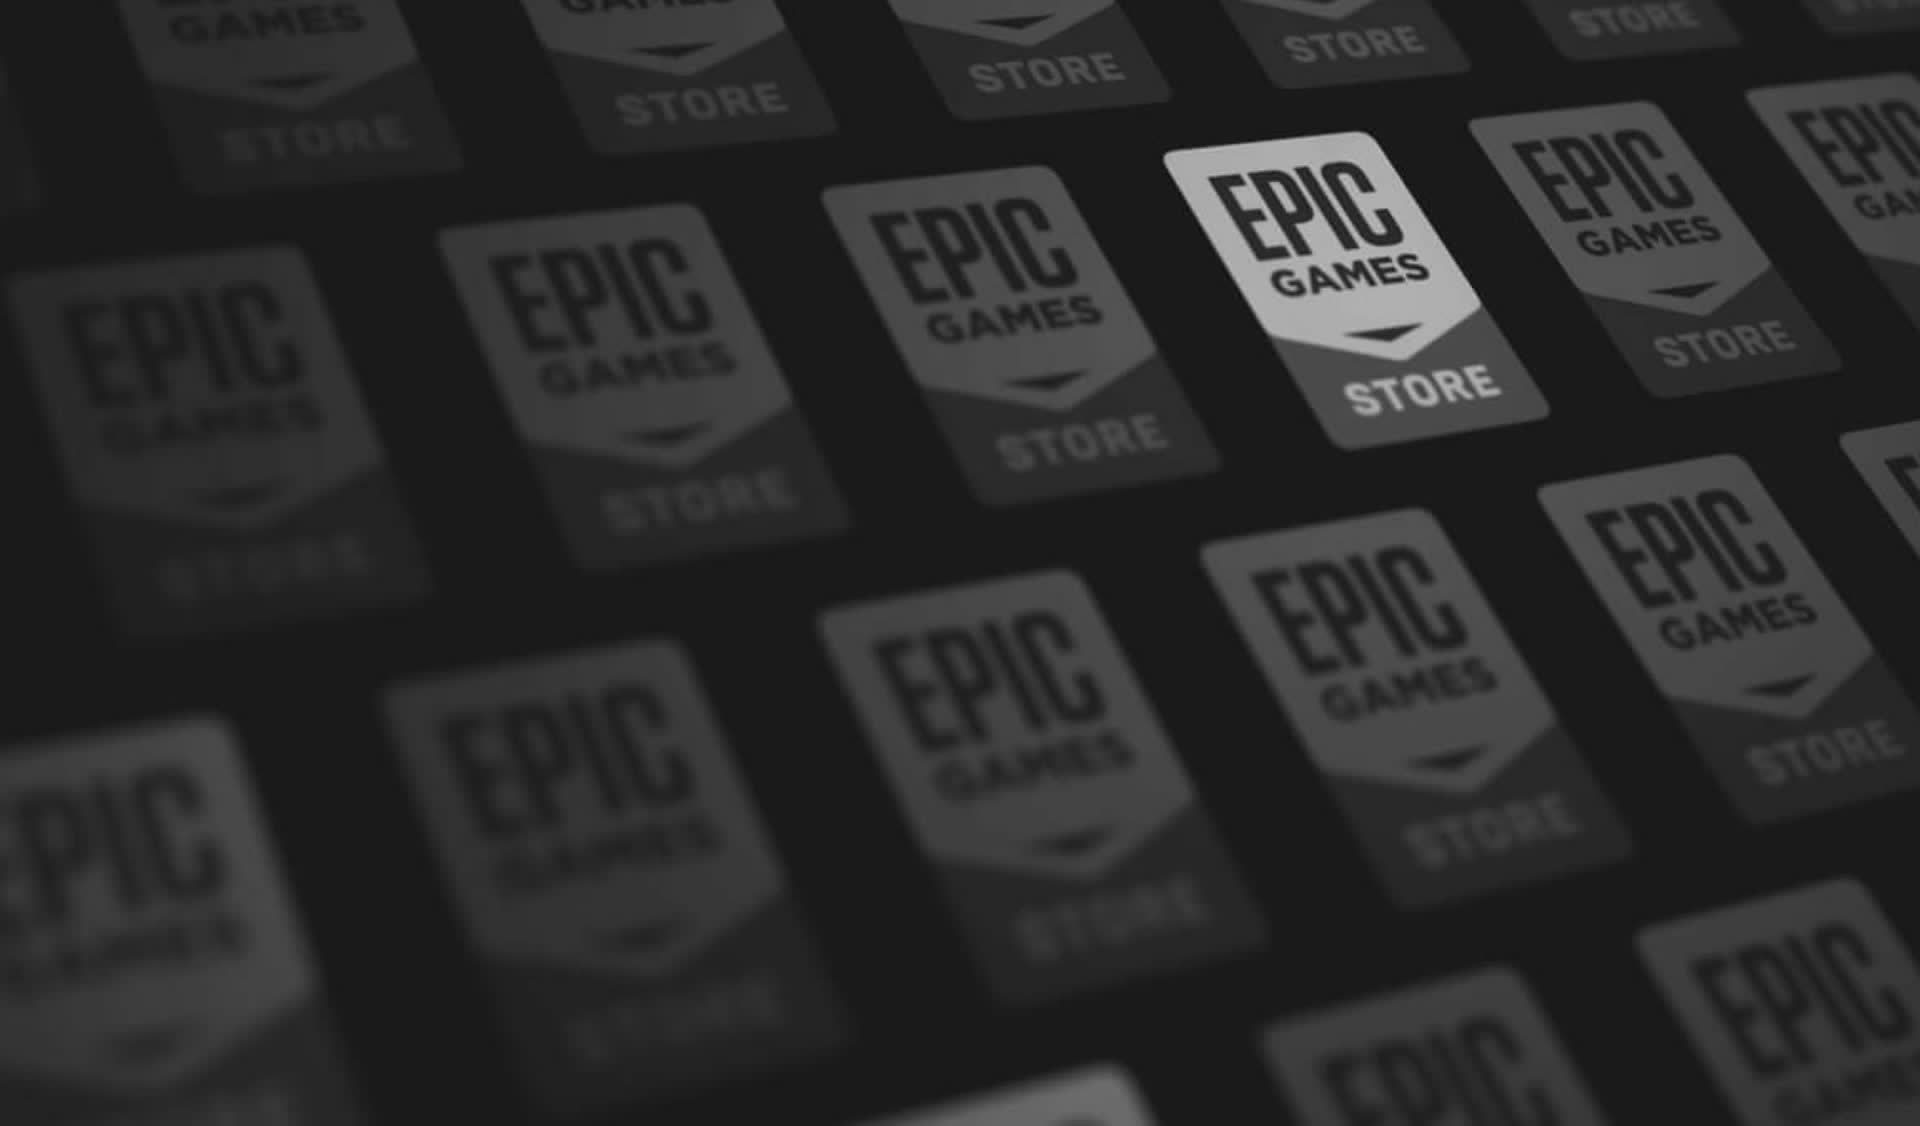 Epic Store gained 7 million new users during the GTA V giveaway